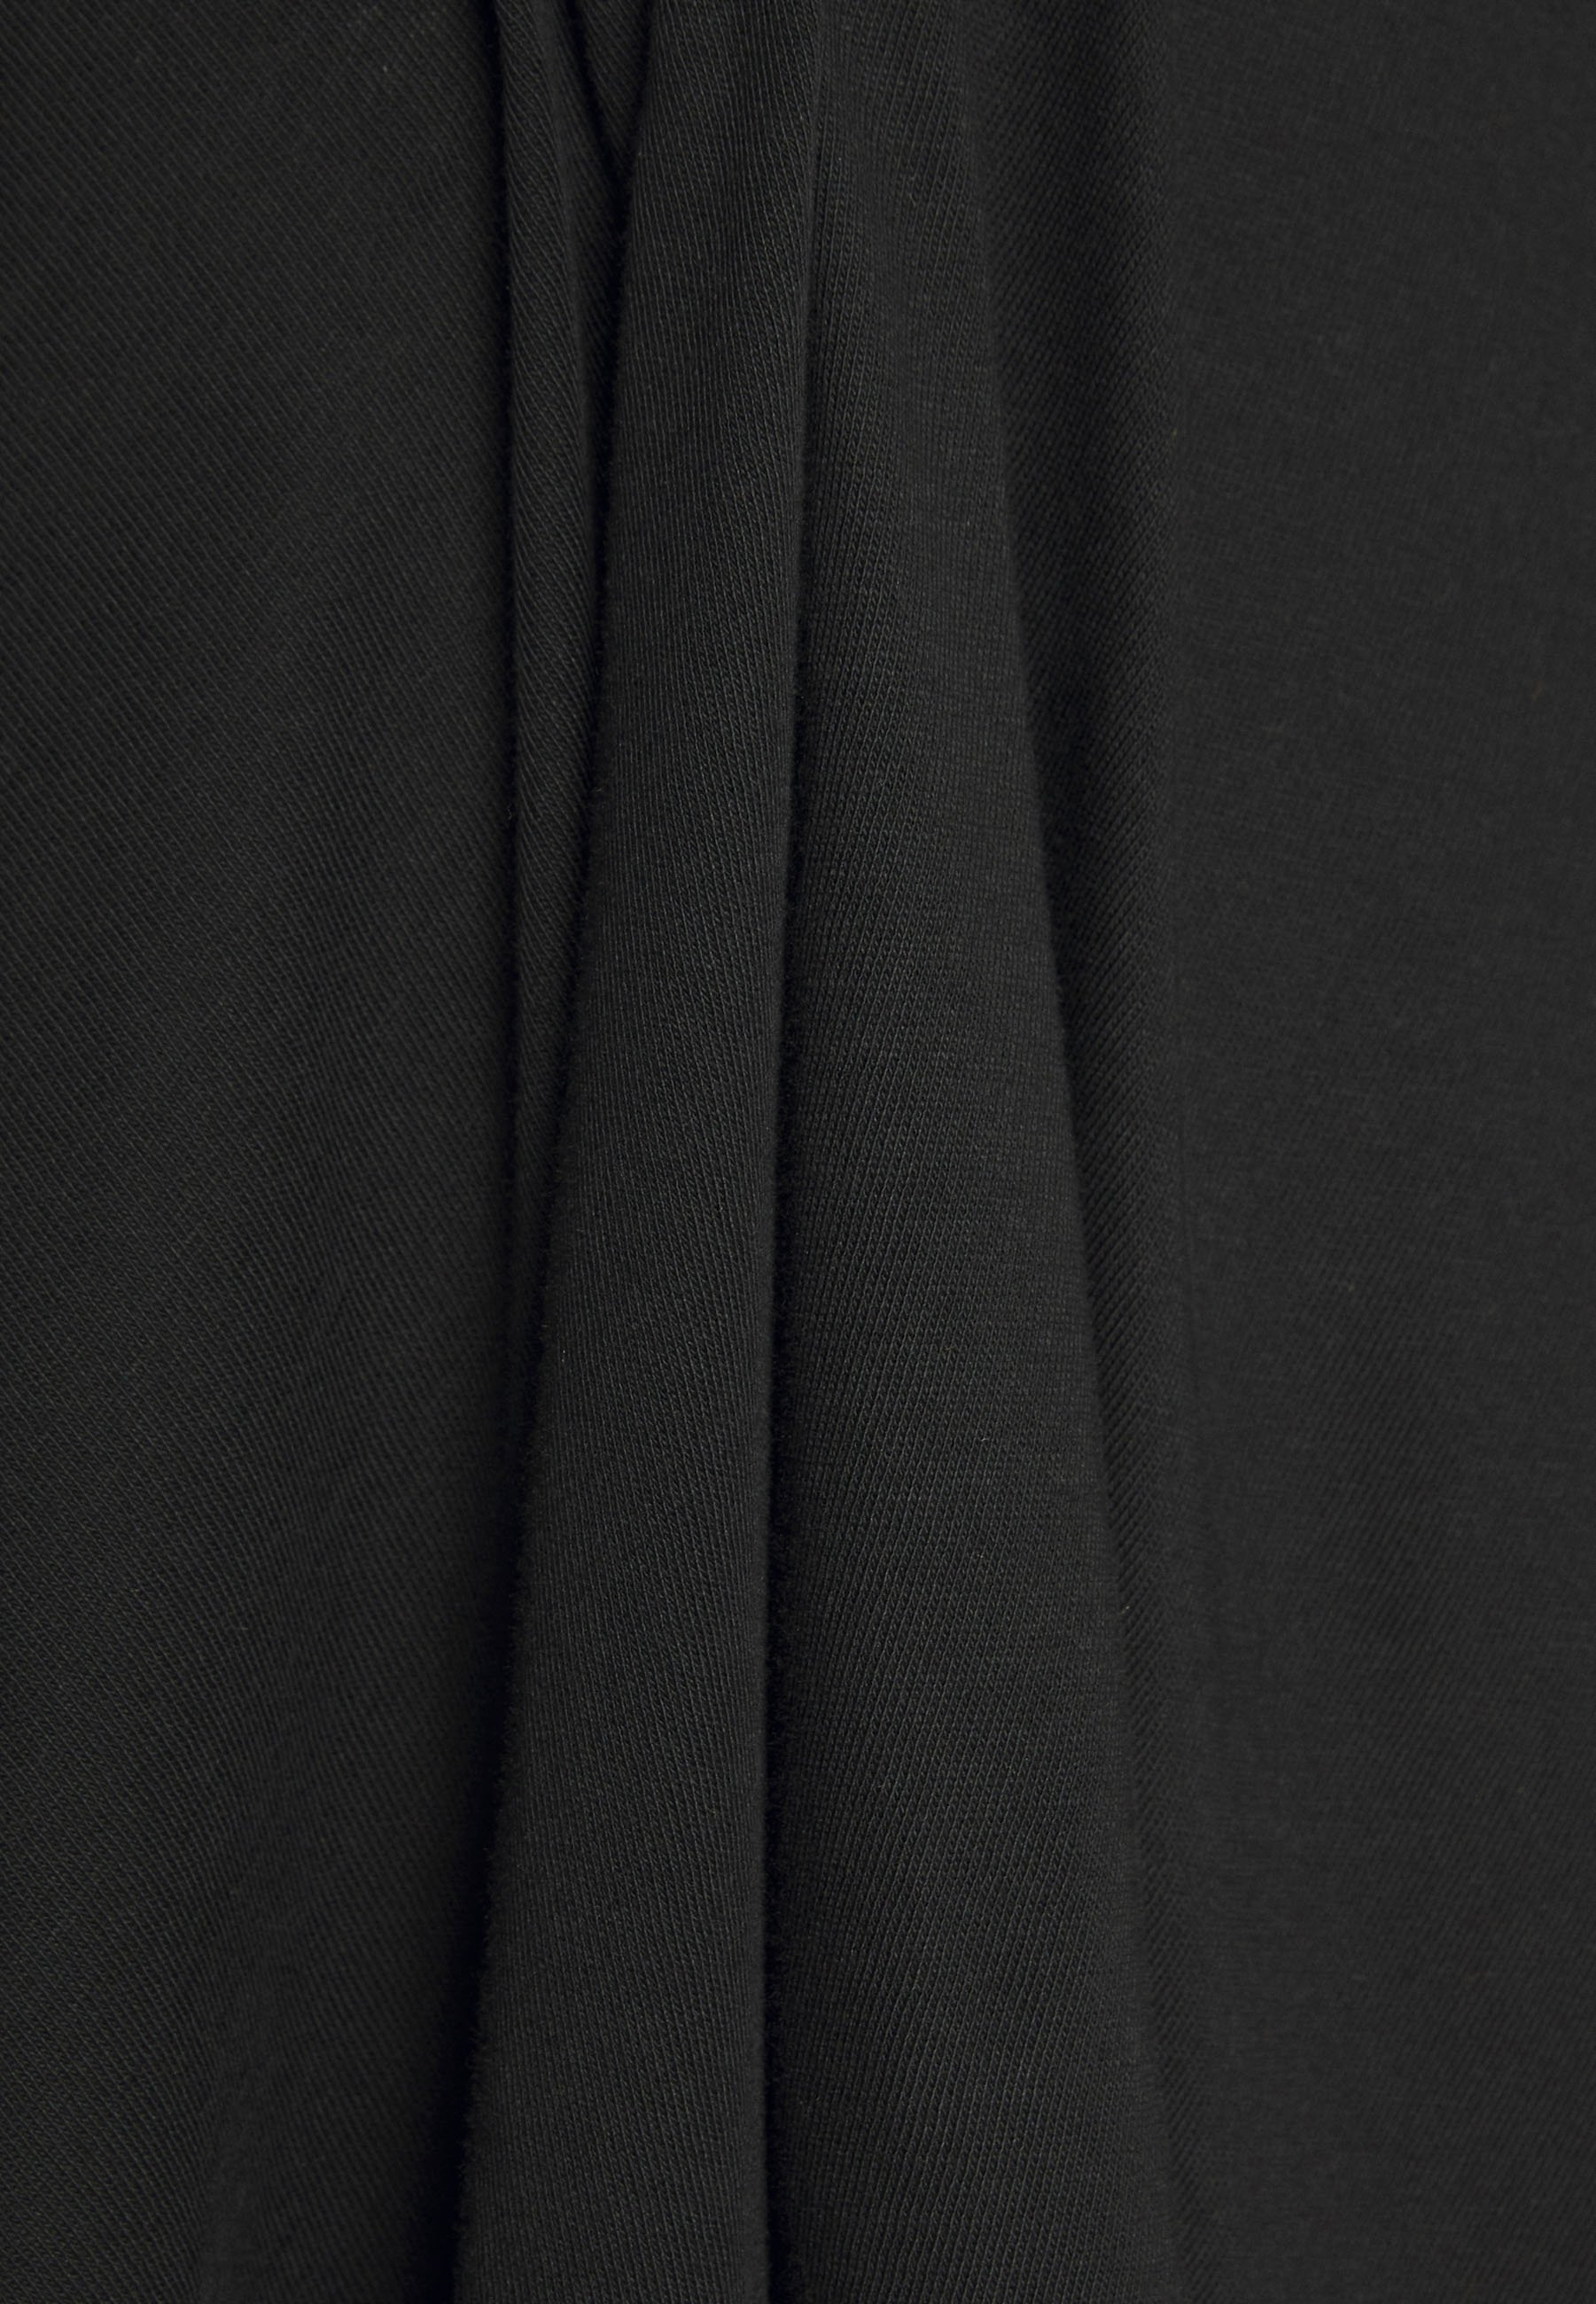 Esprit SOLID PONCH Cape black/schwarz